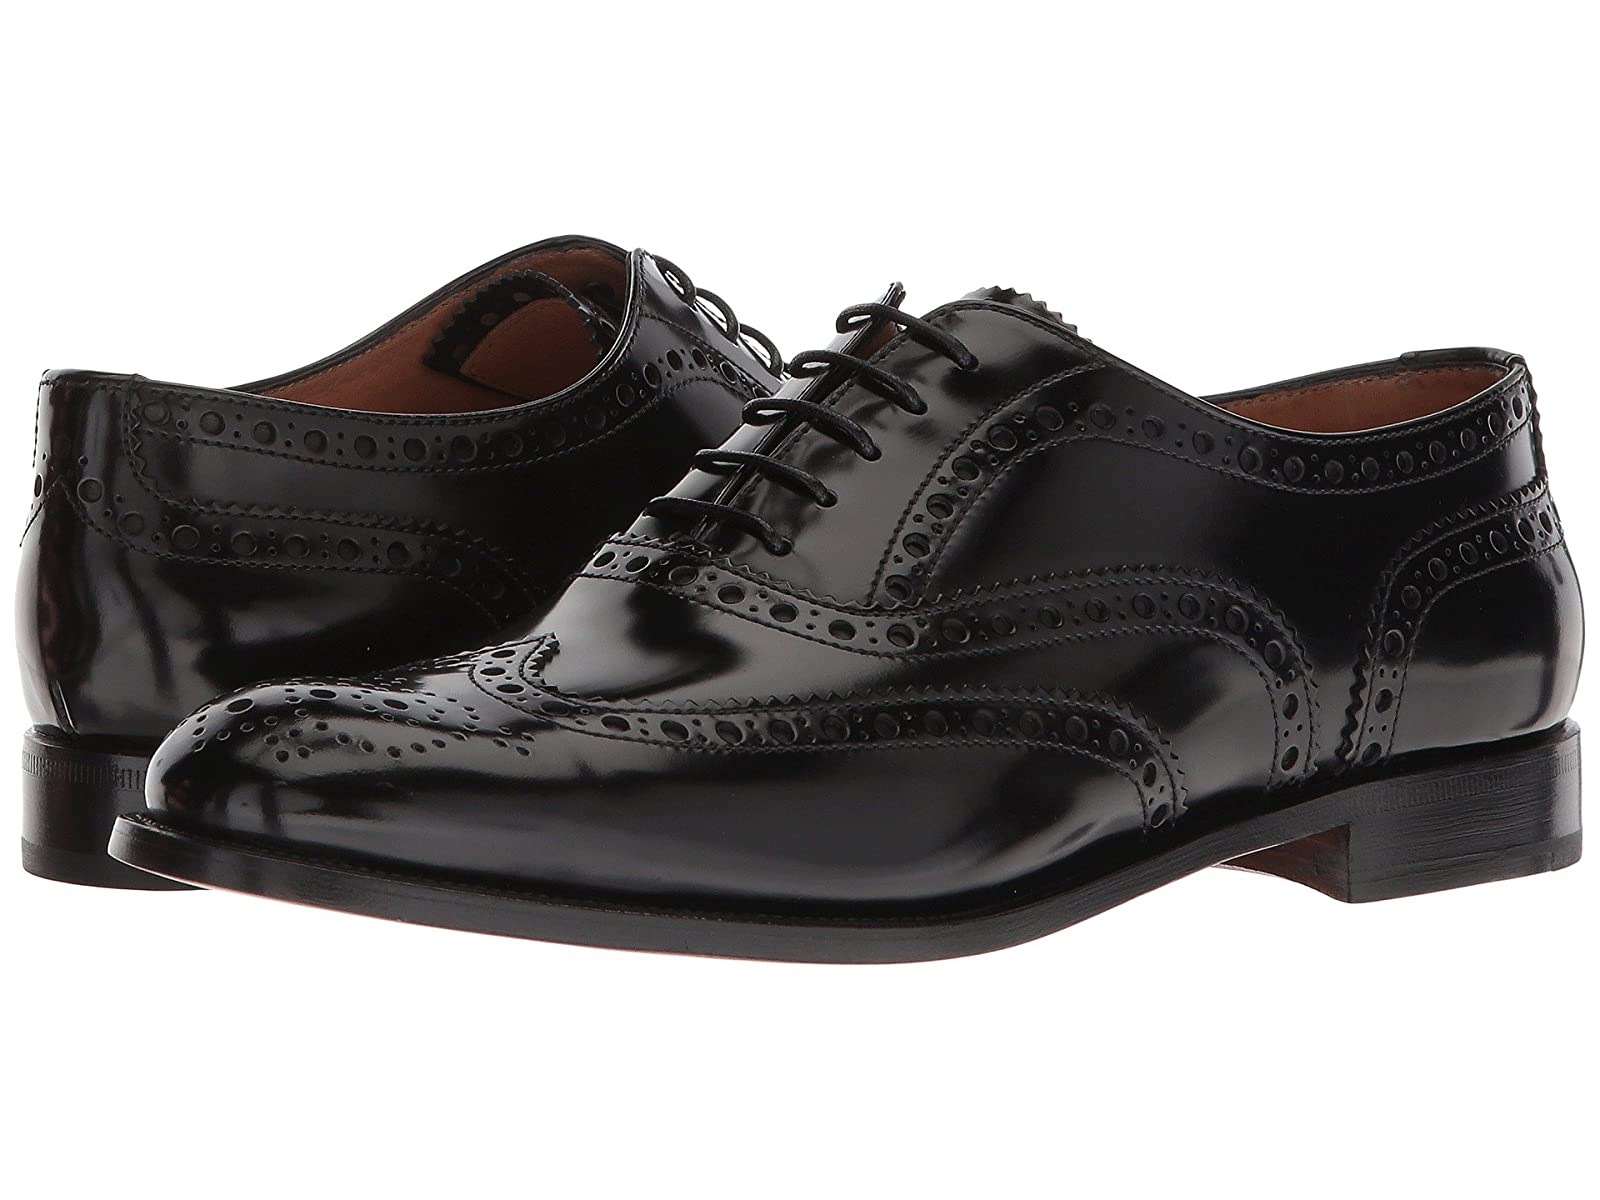 Church's Burwood Wing Tip OxfordAtmospheric grades have affordable shoes